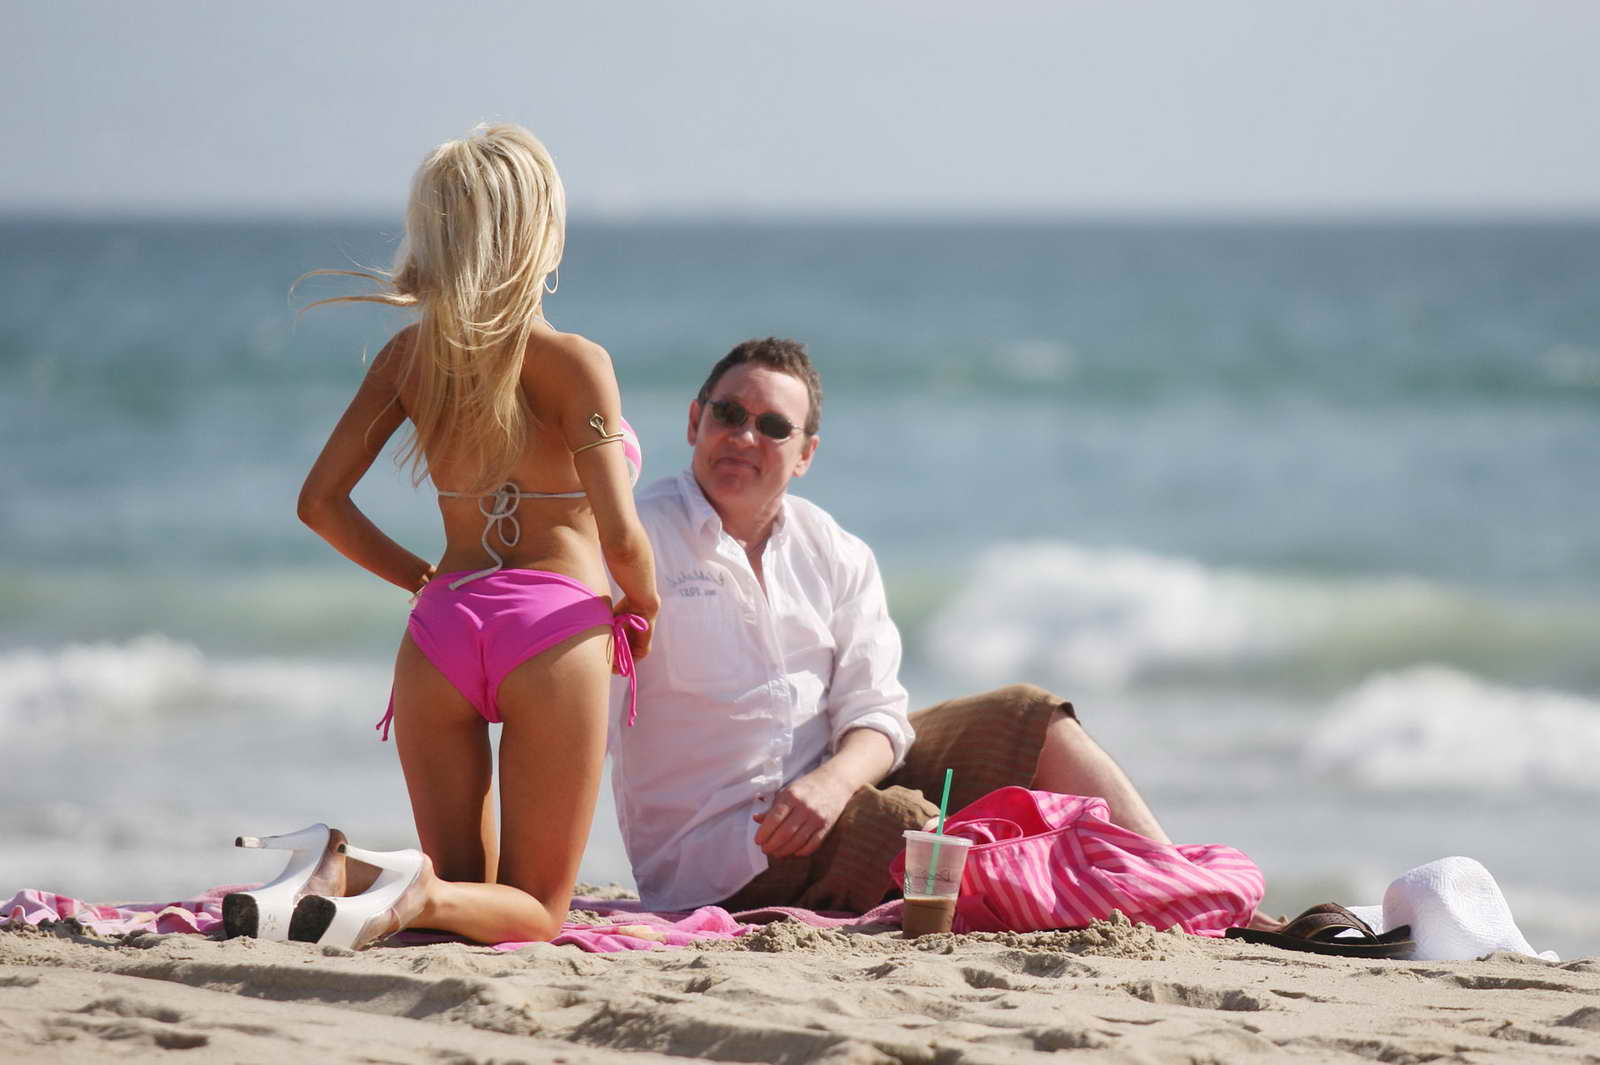 Courtney Stodden in Bikini on the beach in Malibu Pic 10 of 35